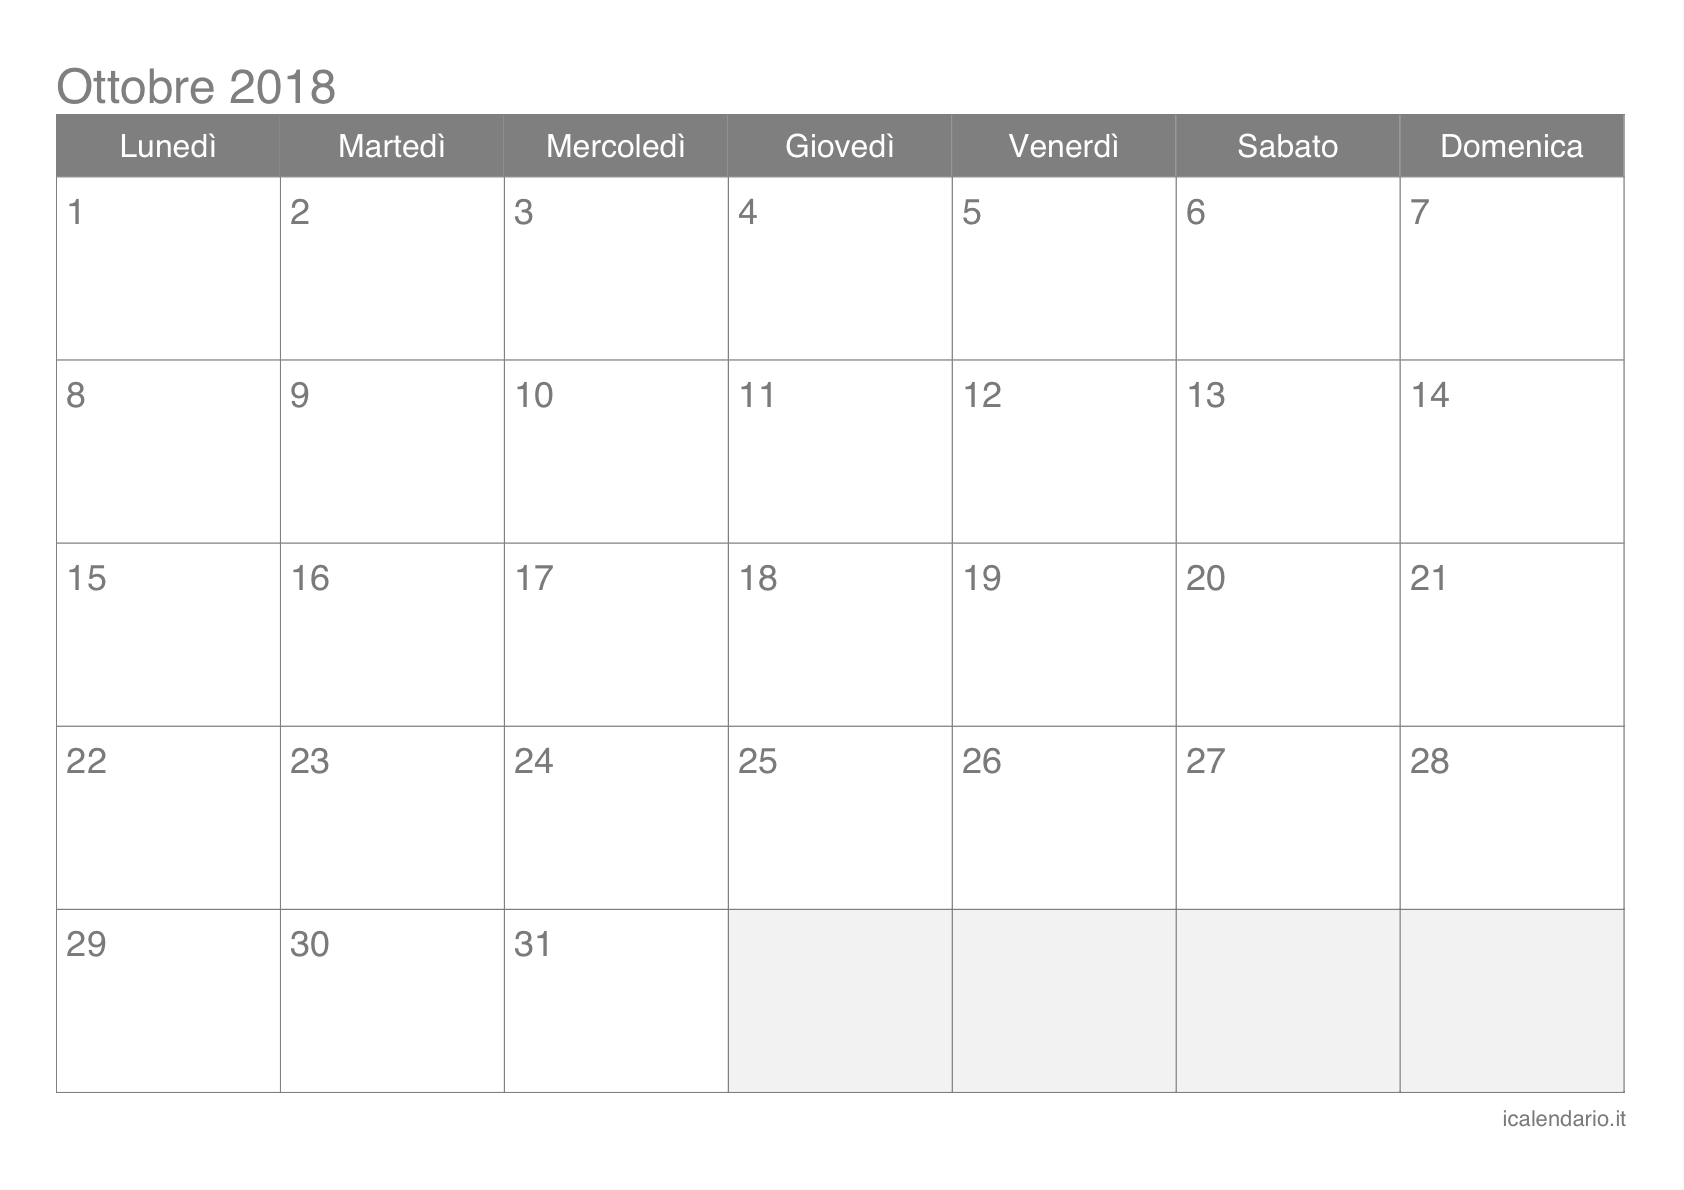 Calendario Di Ottobre.Calendario Ottobre 2018 Da Stampare Icalendario It